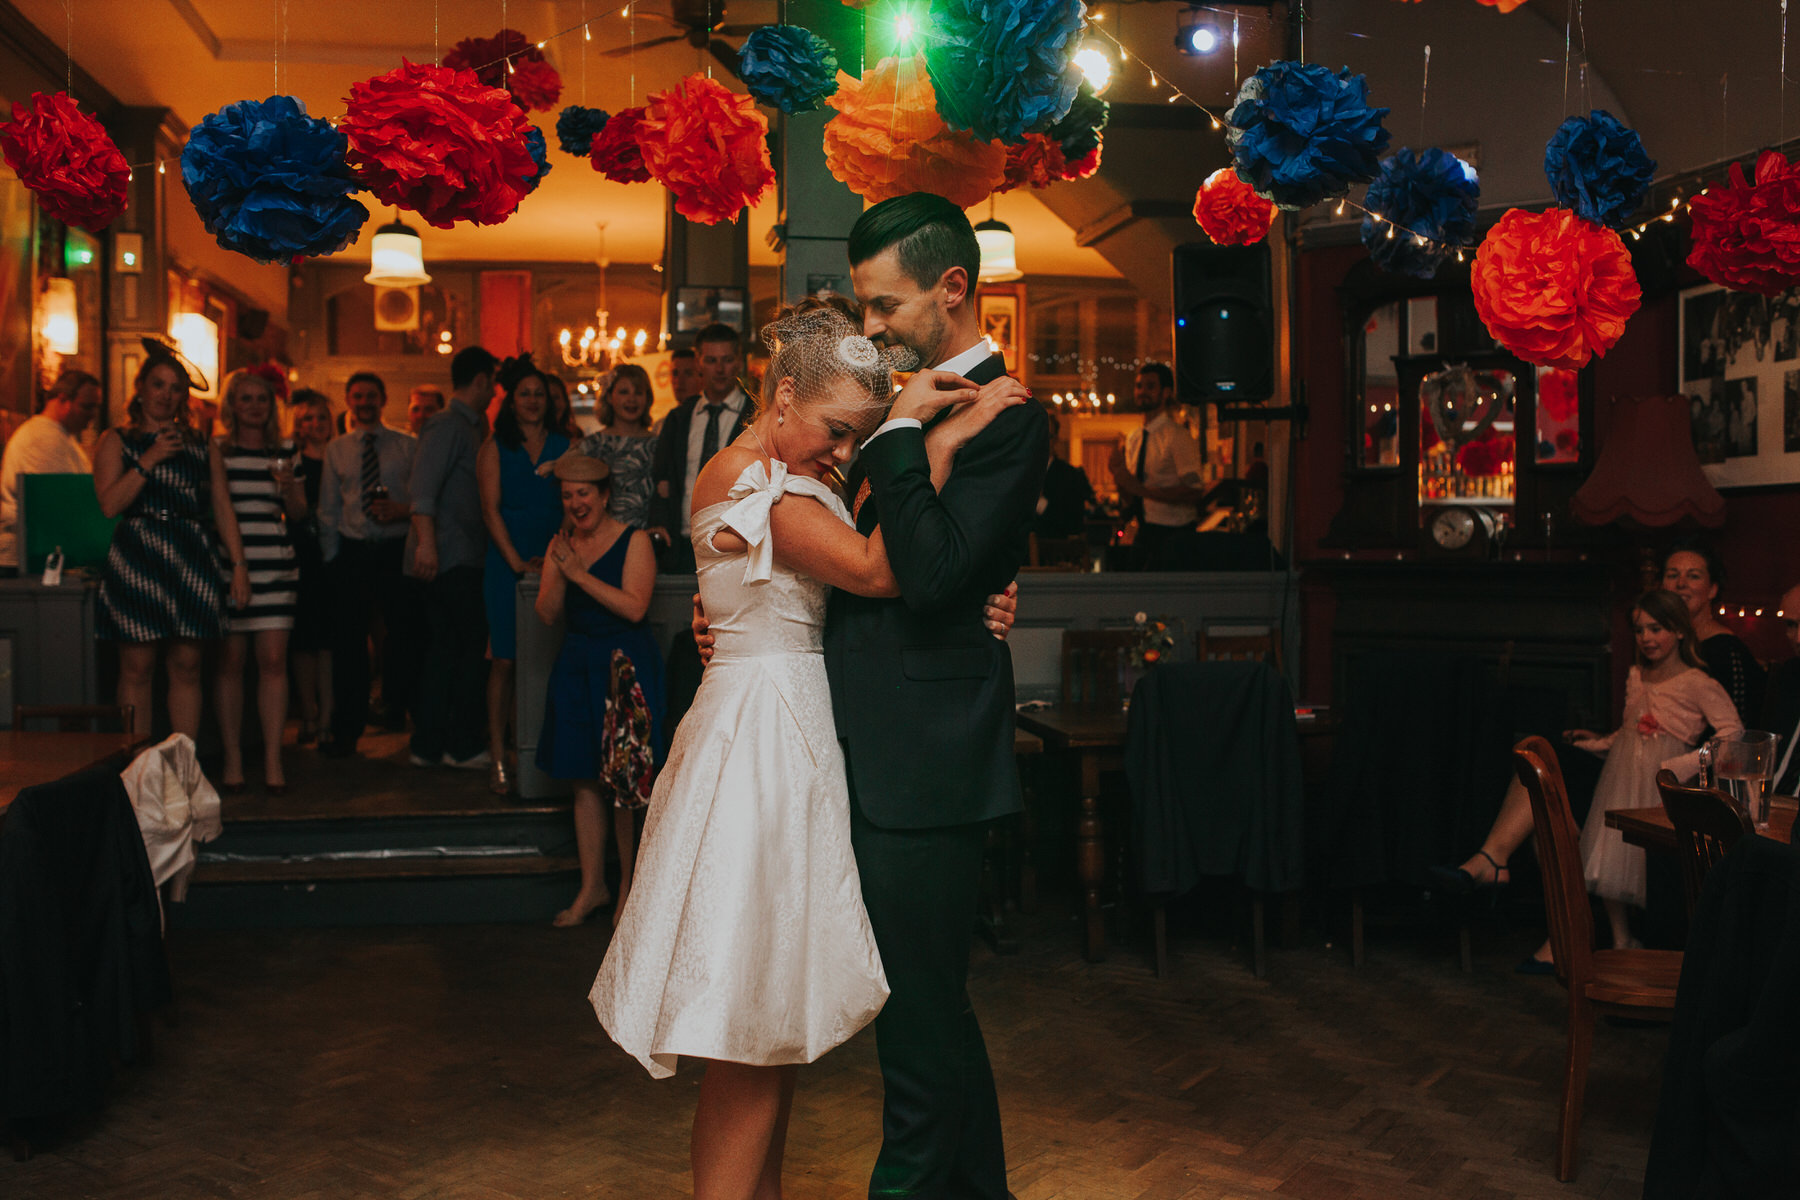 305-Londesborough-Pub-wedding-first-dance.jpg